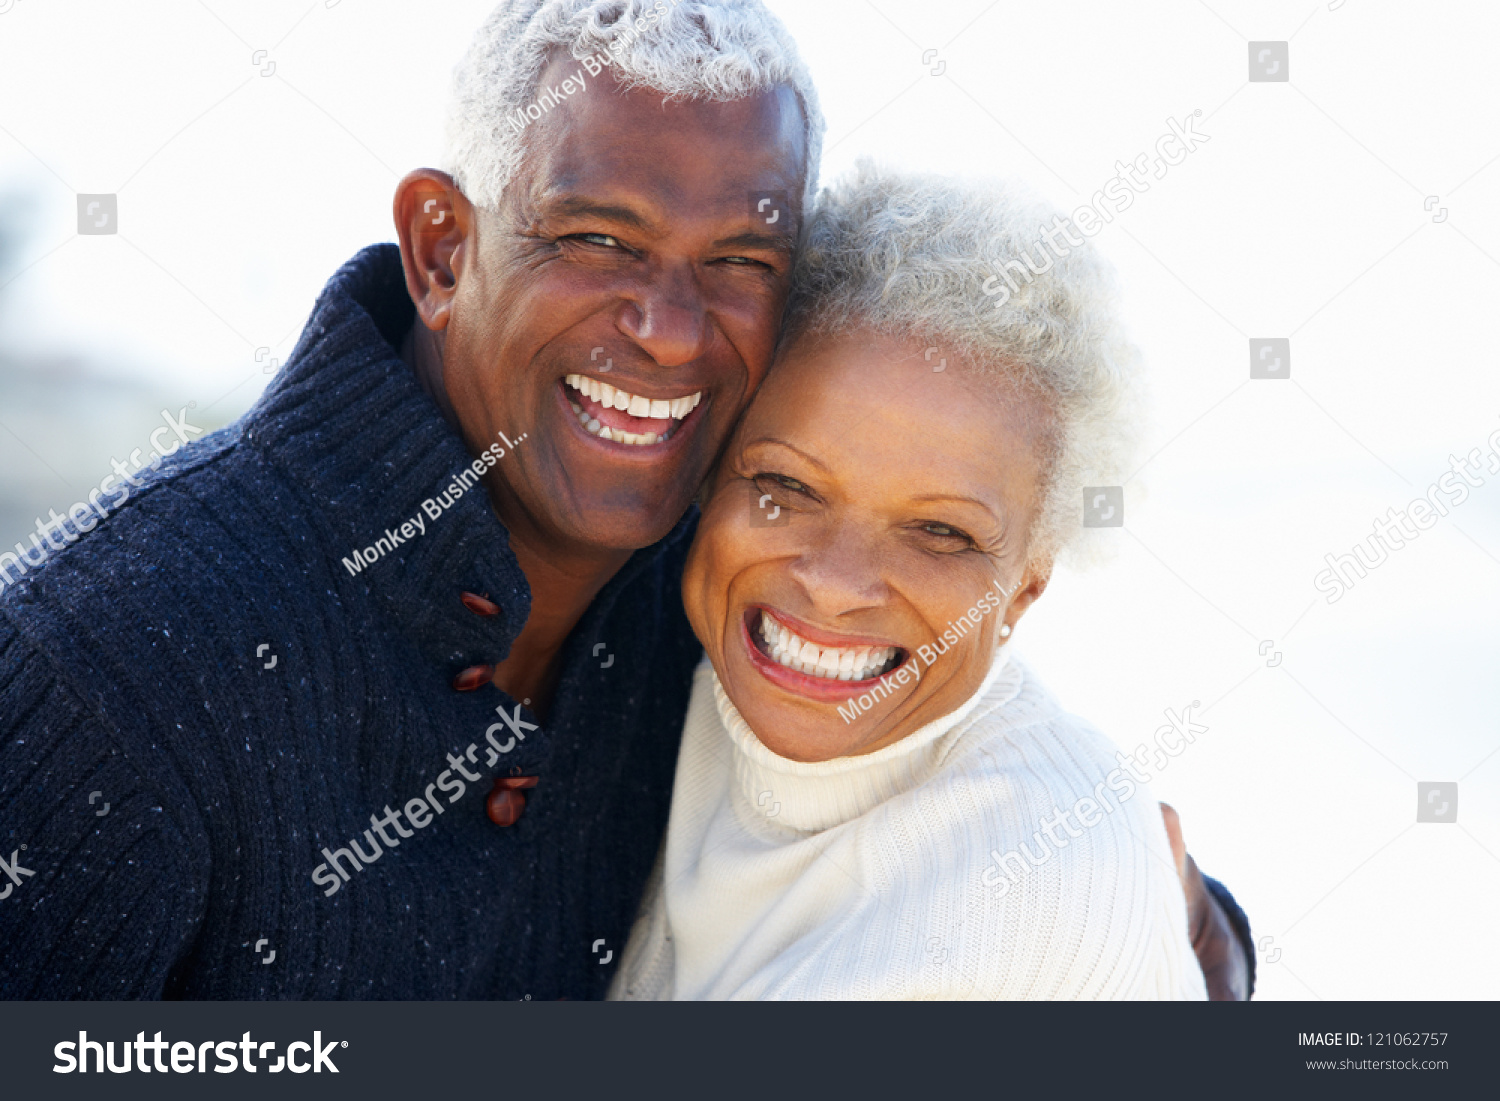 Romantic Senior Couple Hugging On Beach. Romantic Senior Couple Hugging On Beach Stock Photo 121062757